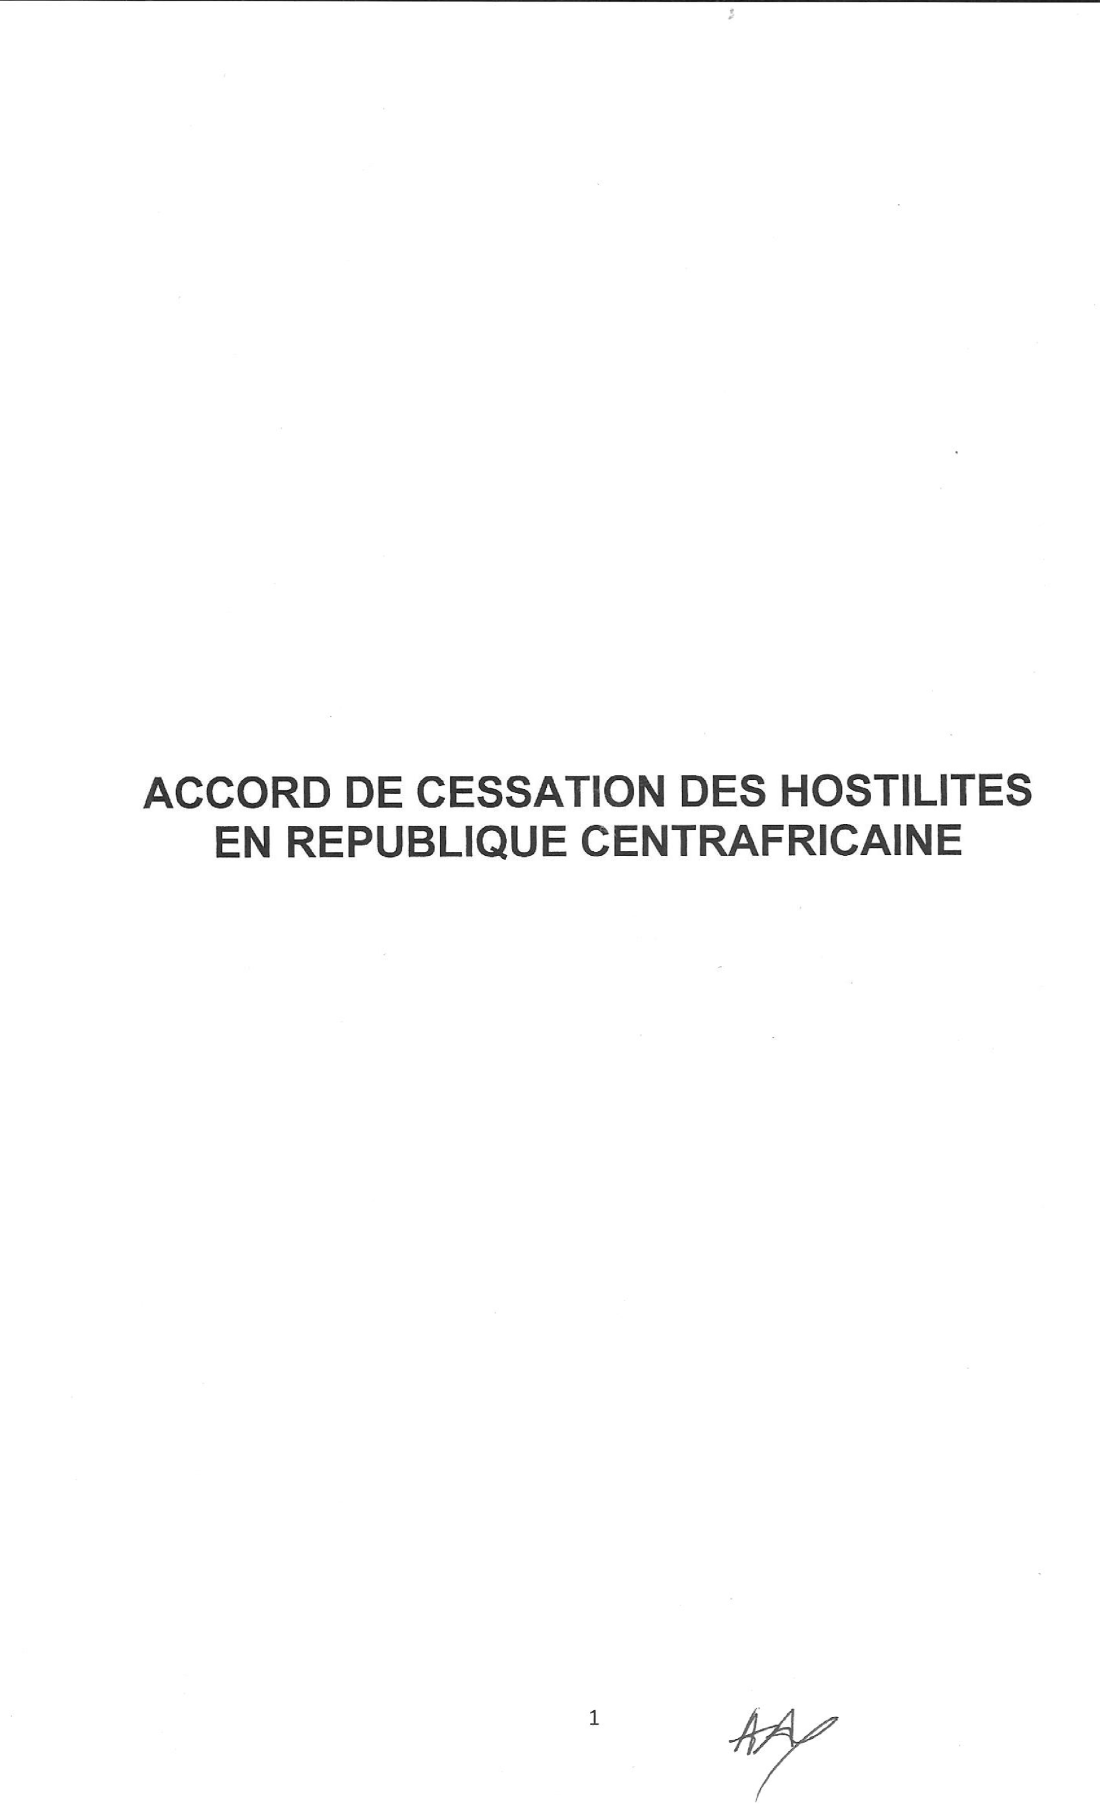 accord-cessation-hostilite-brazzaville-juillet-2014-seleka-balaka-merged-2222-0